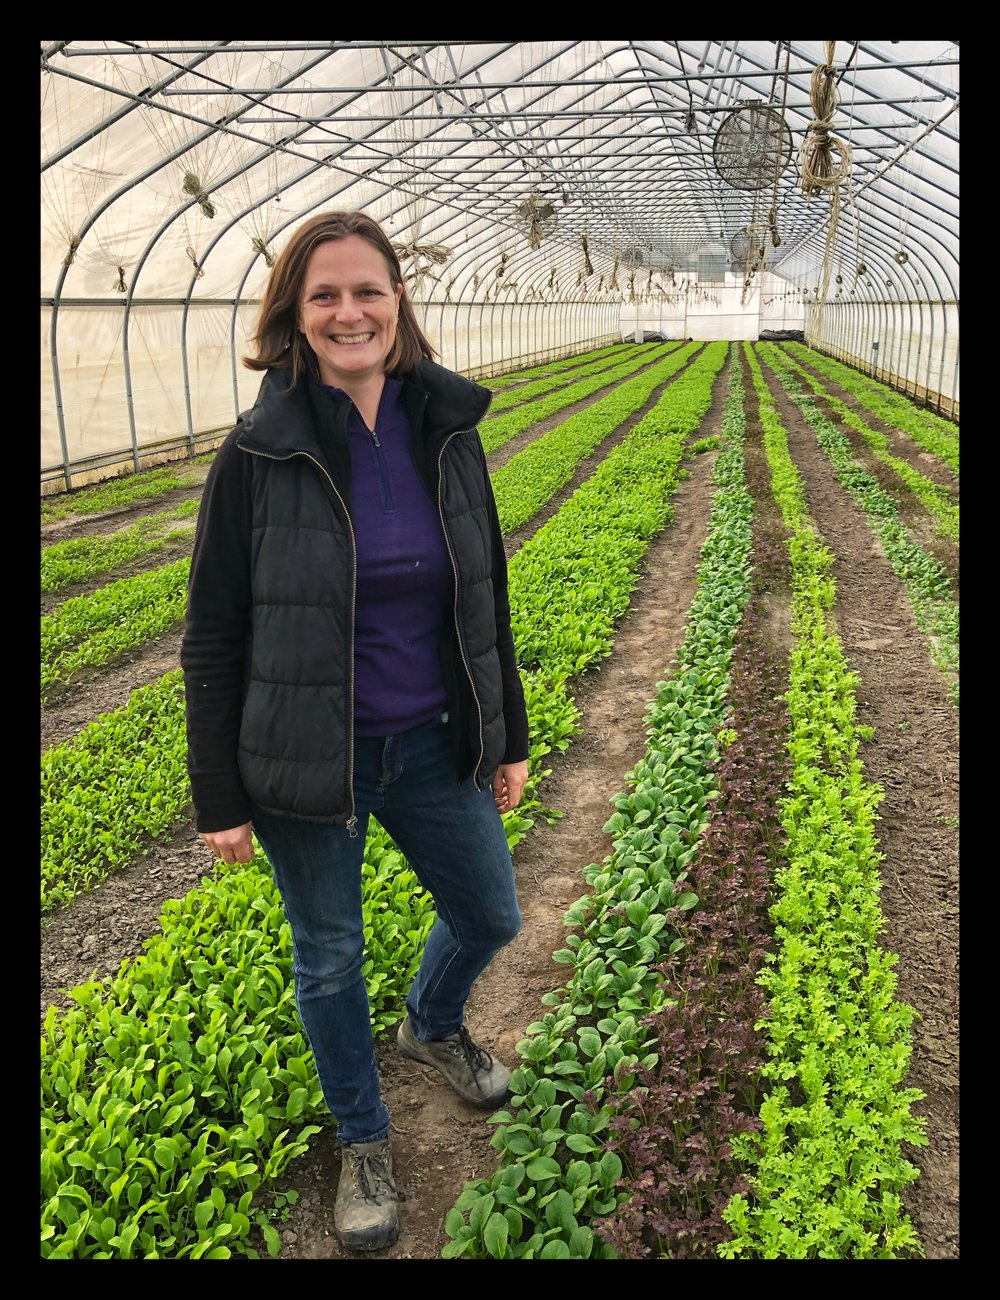 Caroline Pam at her farm Kitchen Garden Farm in Sunderland. She will be at Russo's on Saturday.